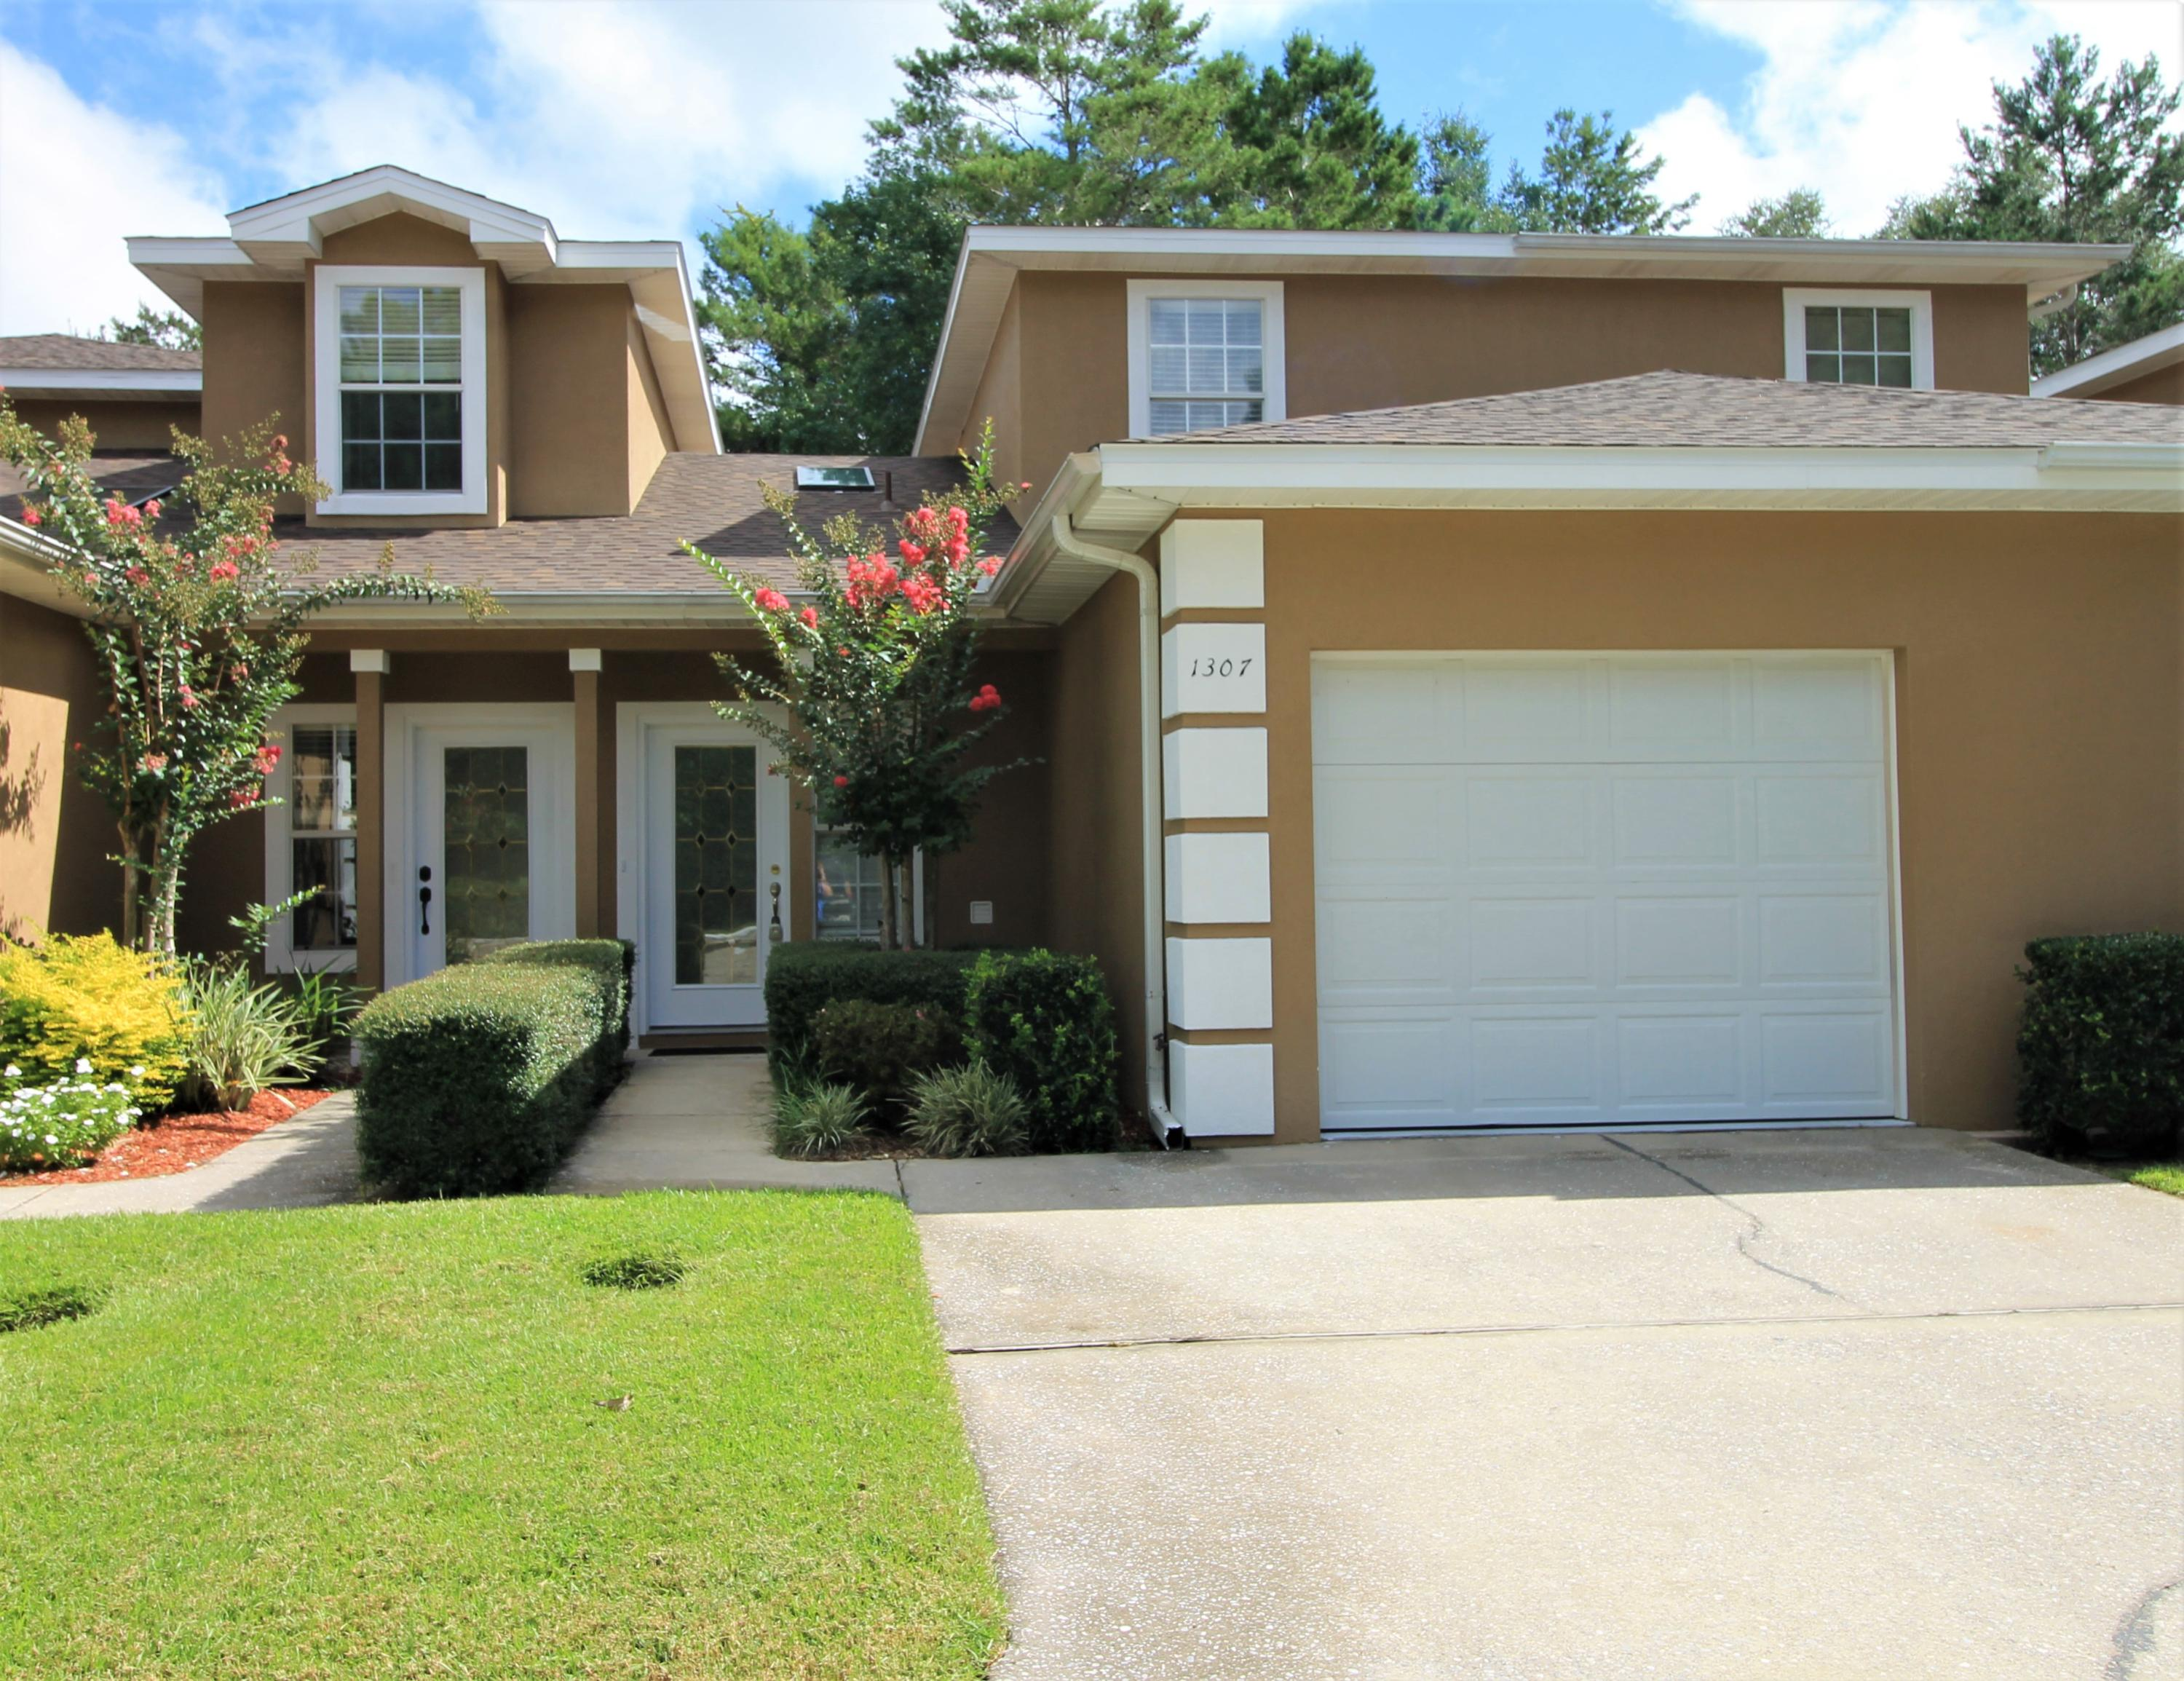 Photo of home for sale at 1307 Treasure, Niceville FL